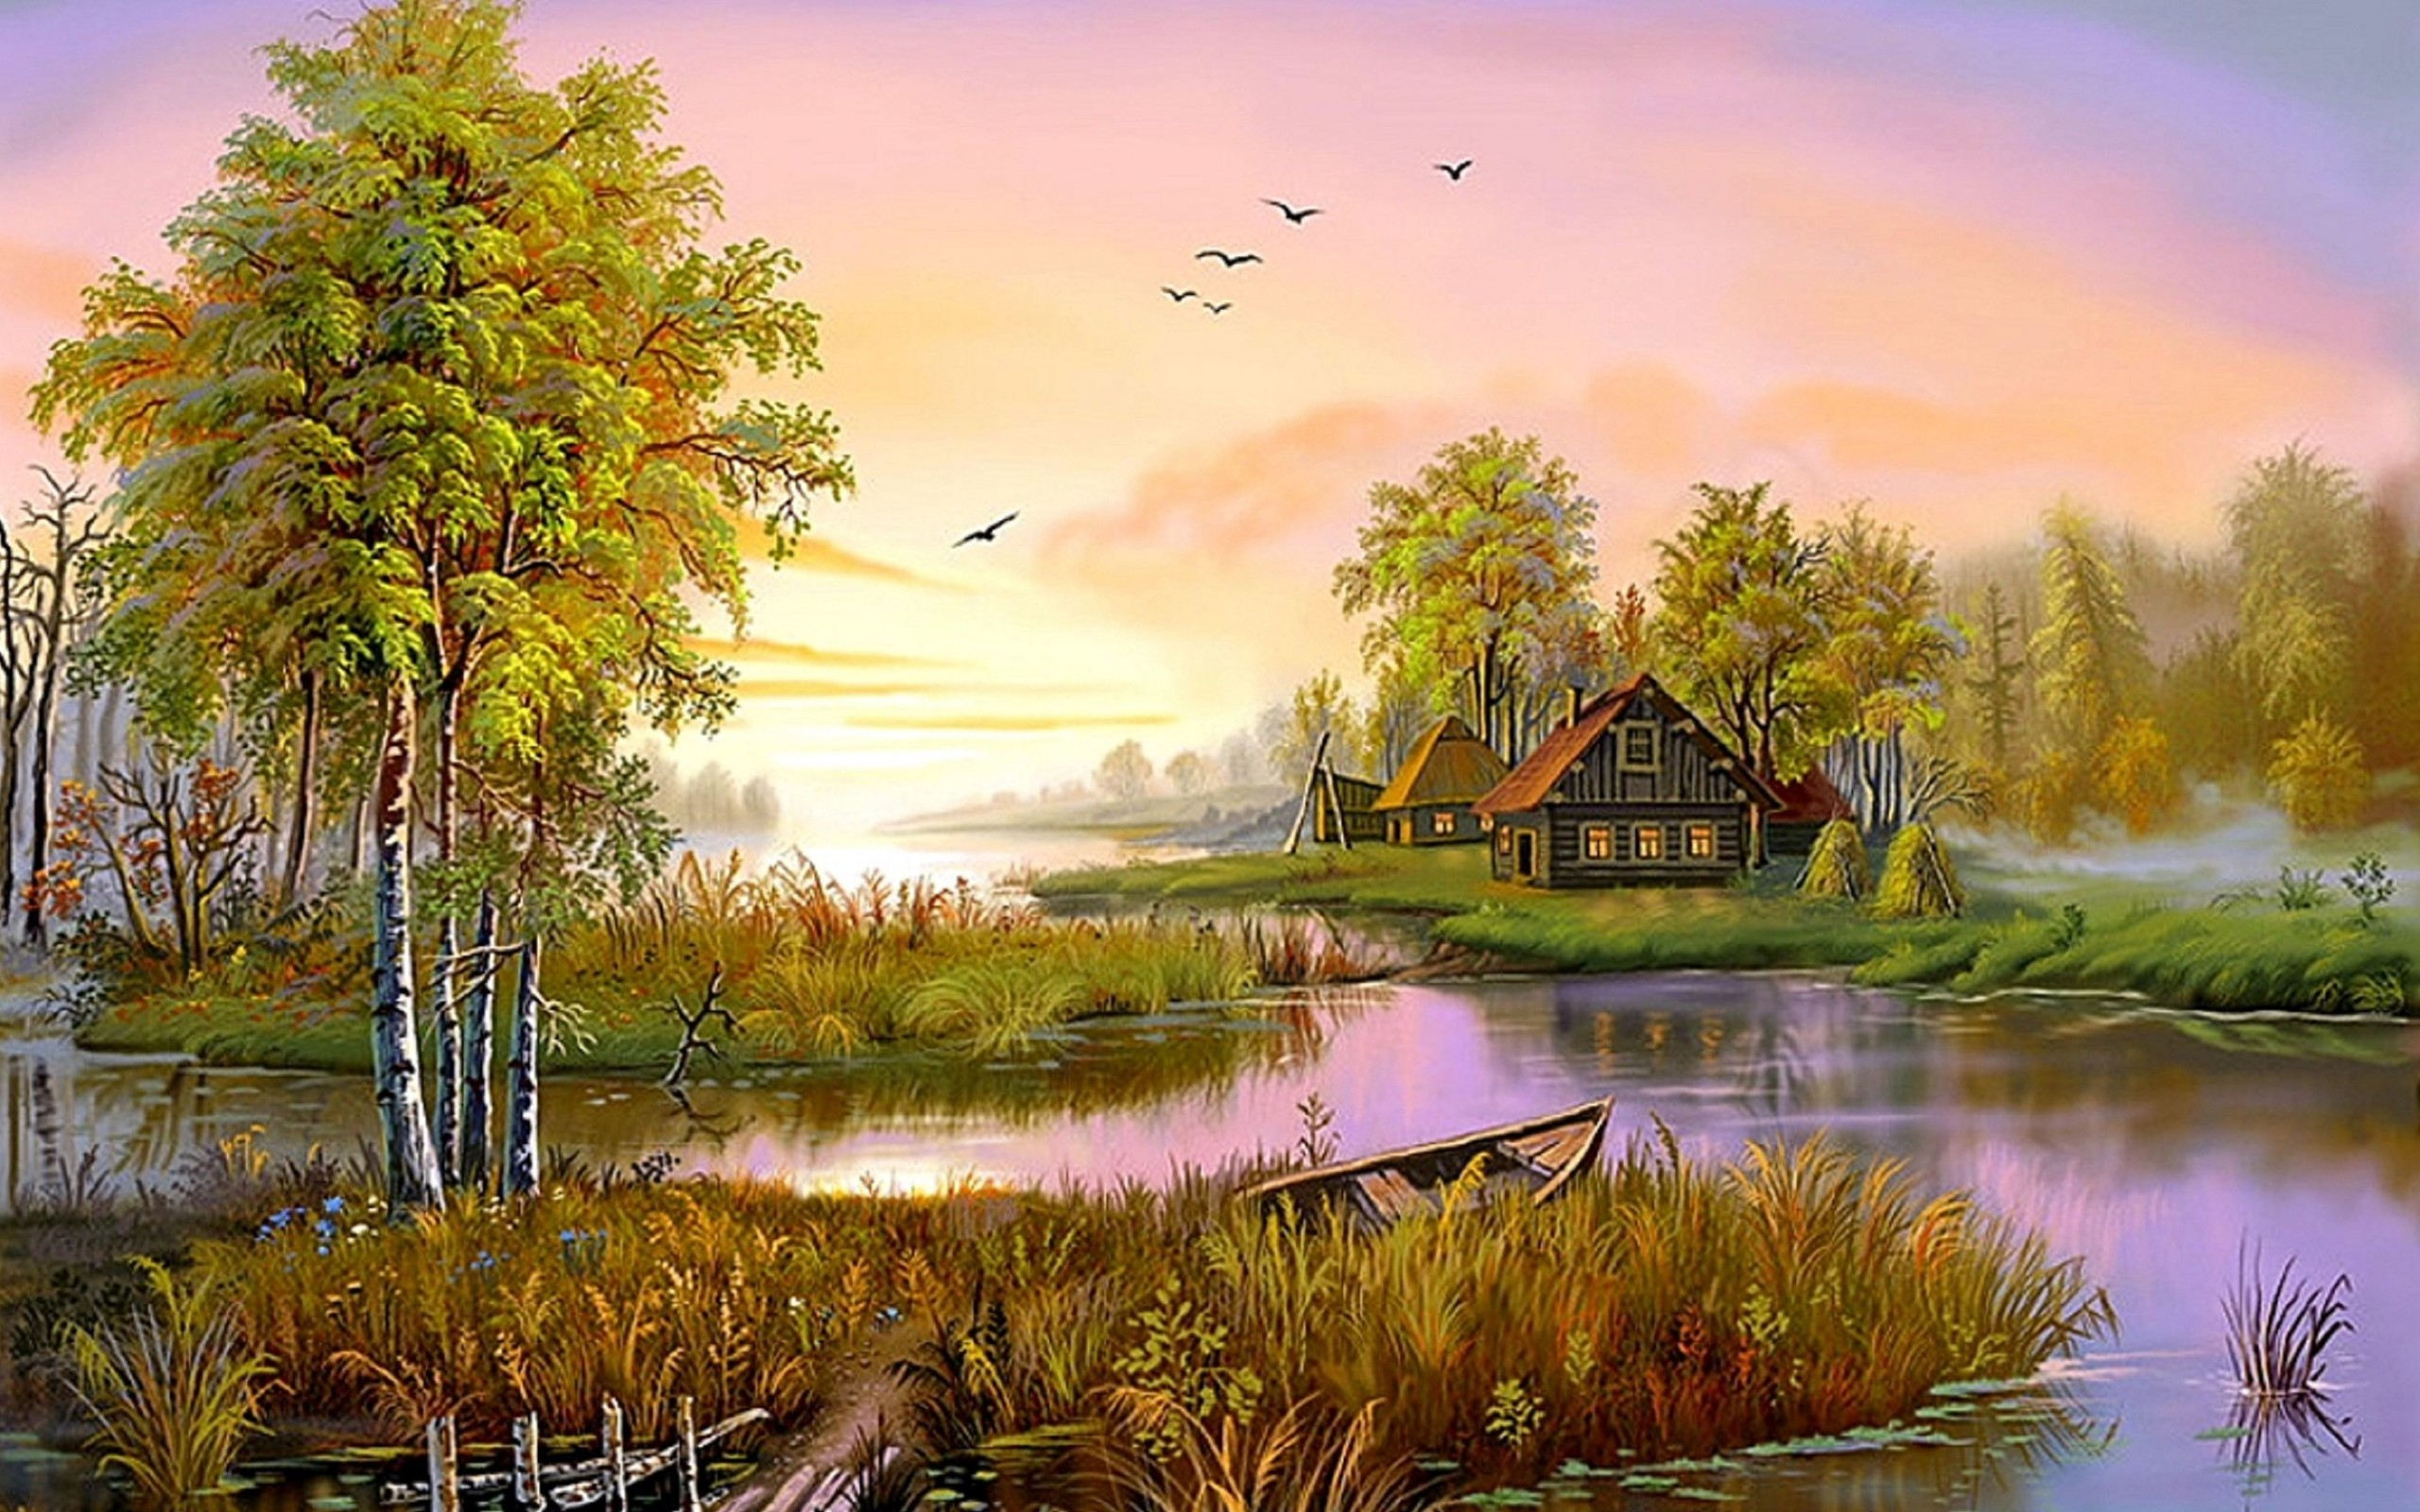 nature lovely hd wallpapers painting desktop artistic pretty background backgrounds wall landscape lake spring boat resolution dailyhdwallpaper tree definition